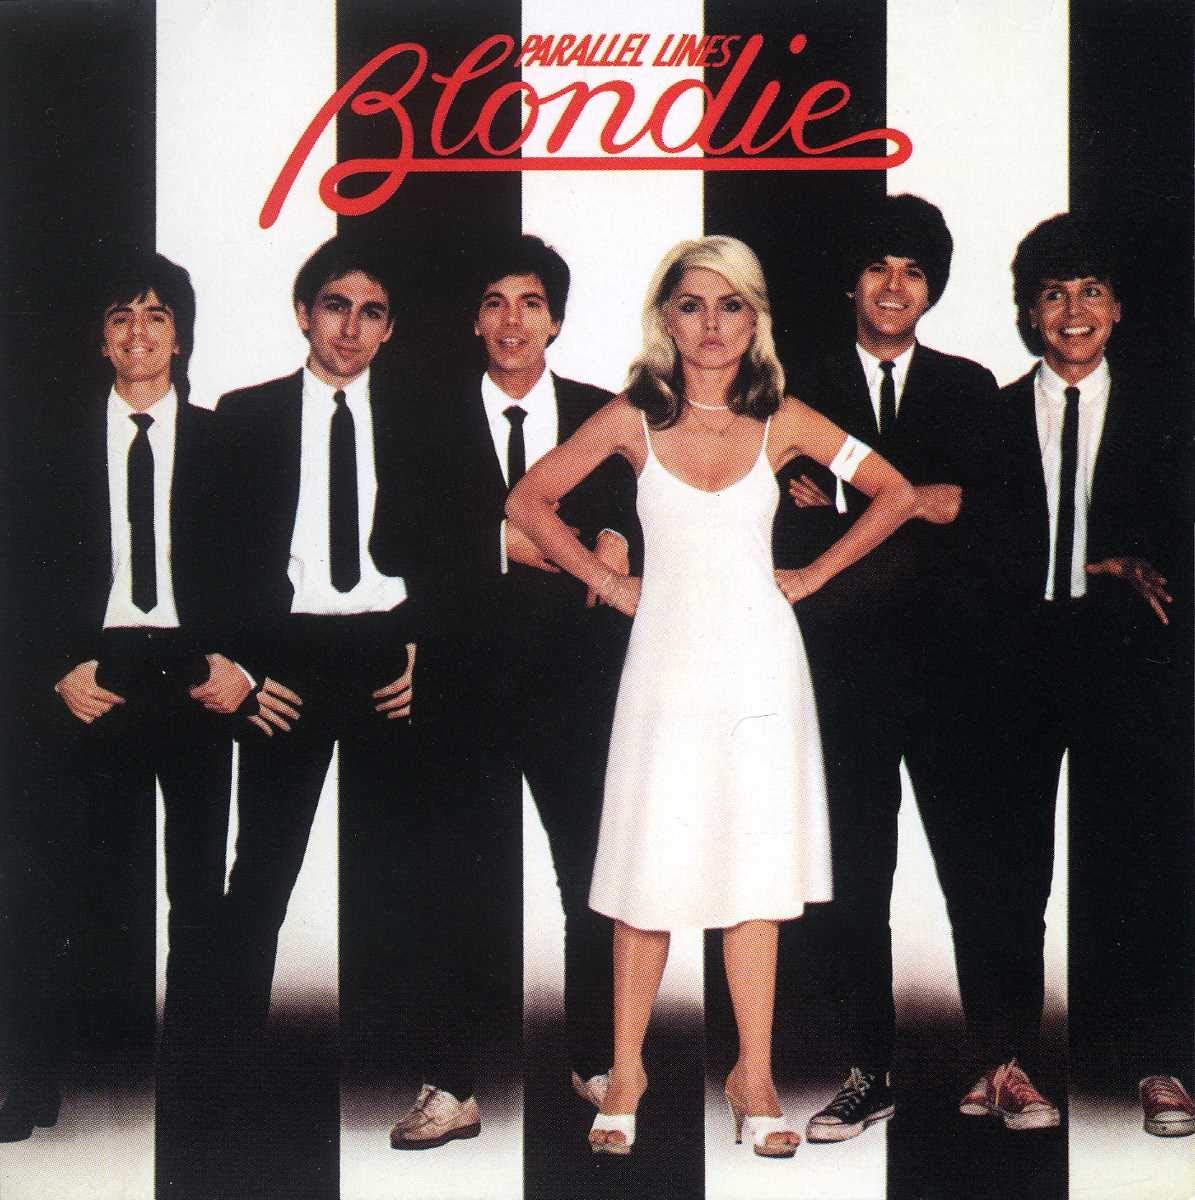 test Twitter Media - RT @PunKandStuff: Released 43 years ago today 'Parallel Lines' the third studio album by #Blondie https://t.co/thoV064E9O